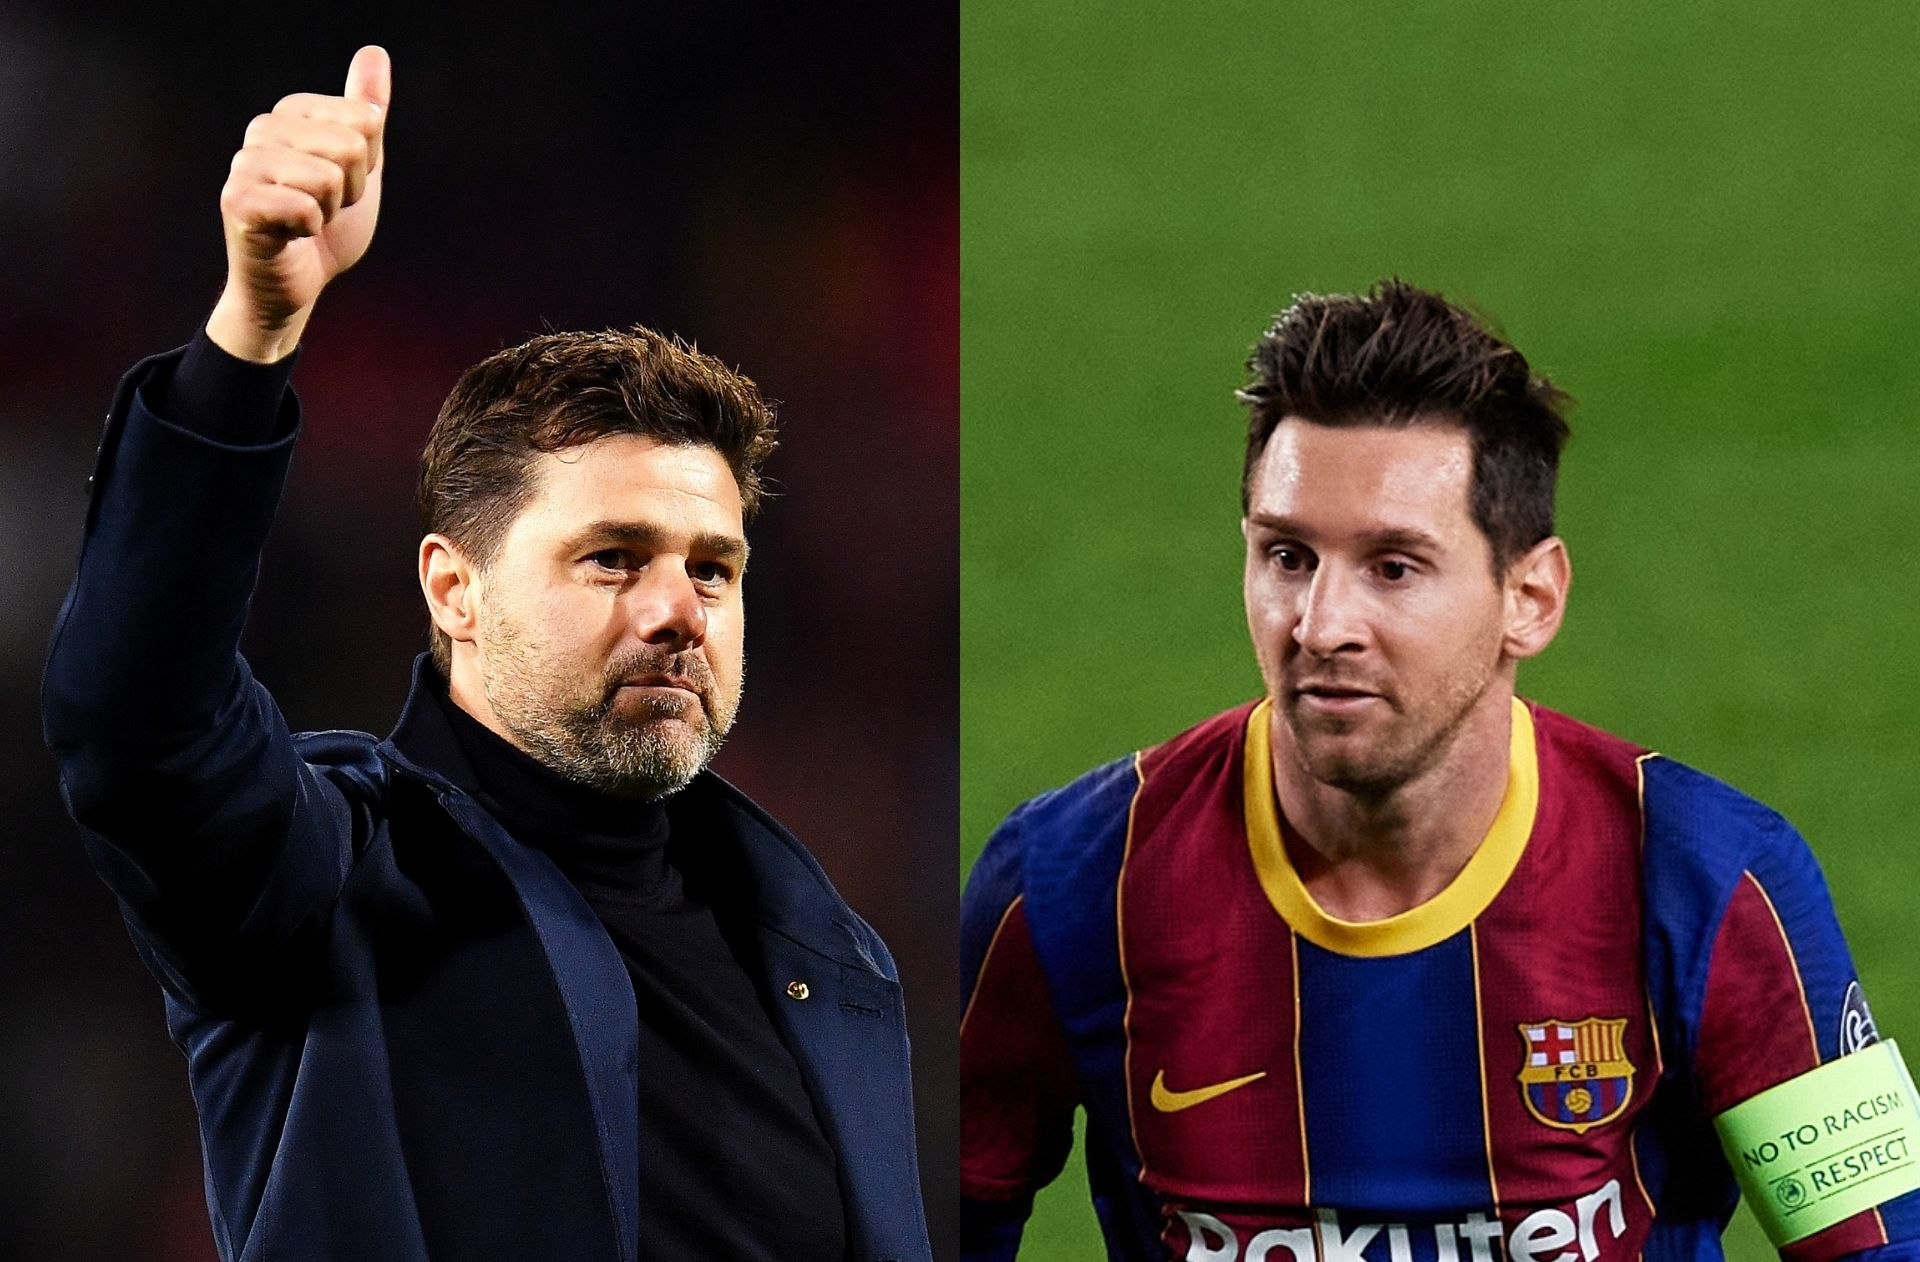 Messi to PSG? Pochettino leaves the door open for Barcelona star